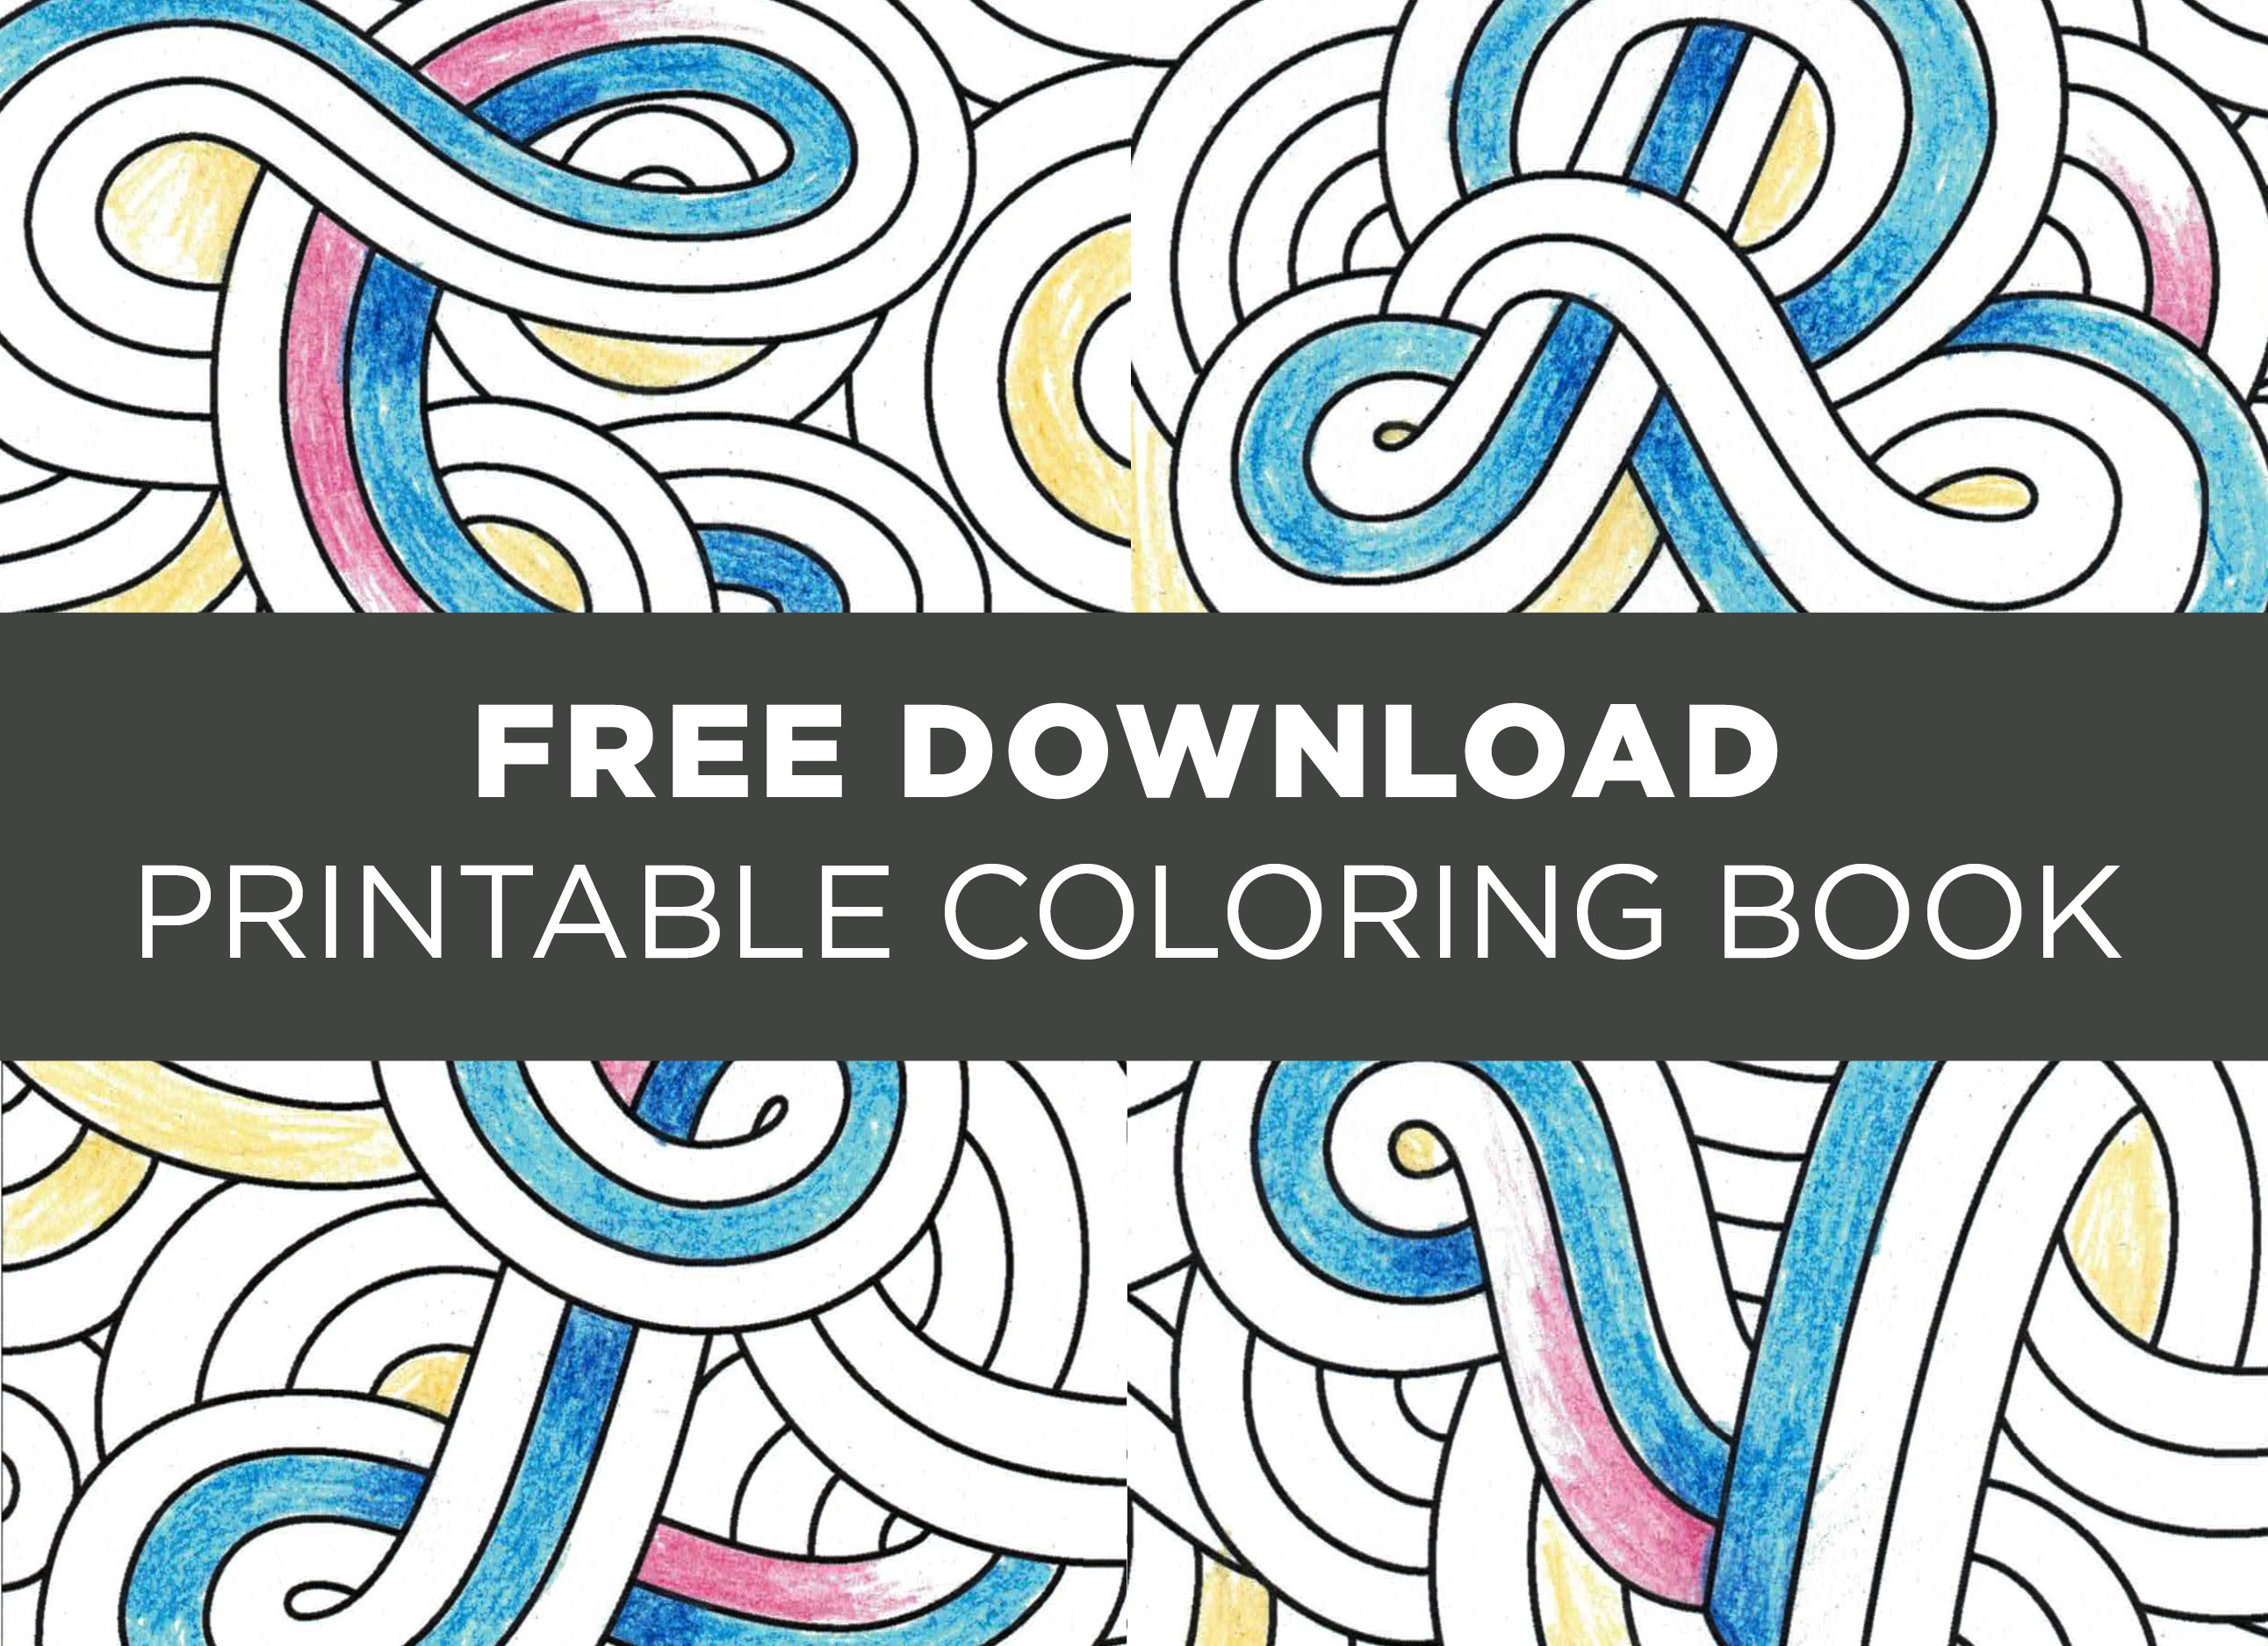 Download The Creativelive Printable Coloring Book - Free Printable Coloring Book